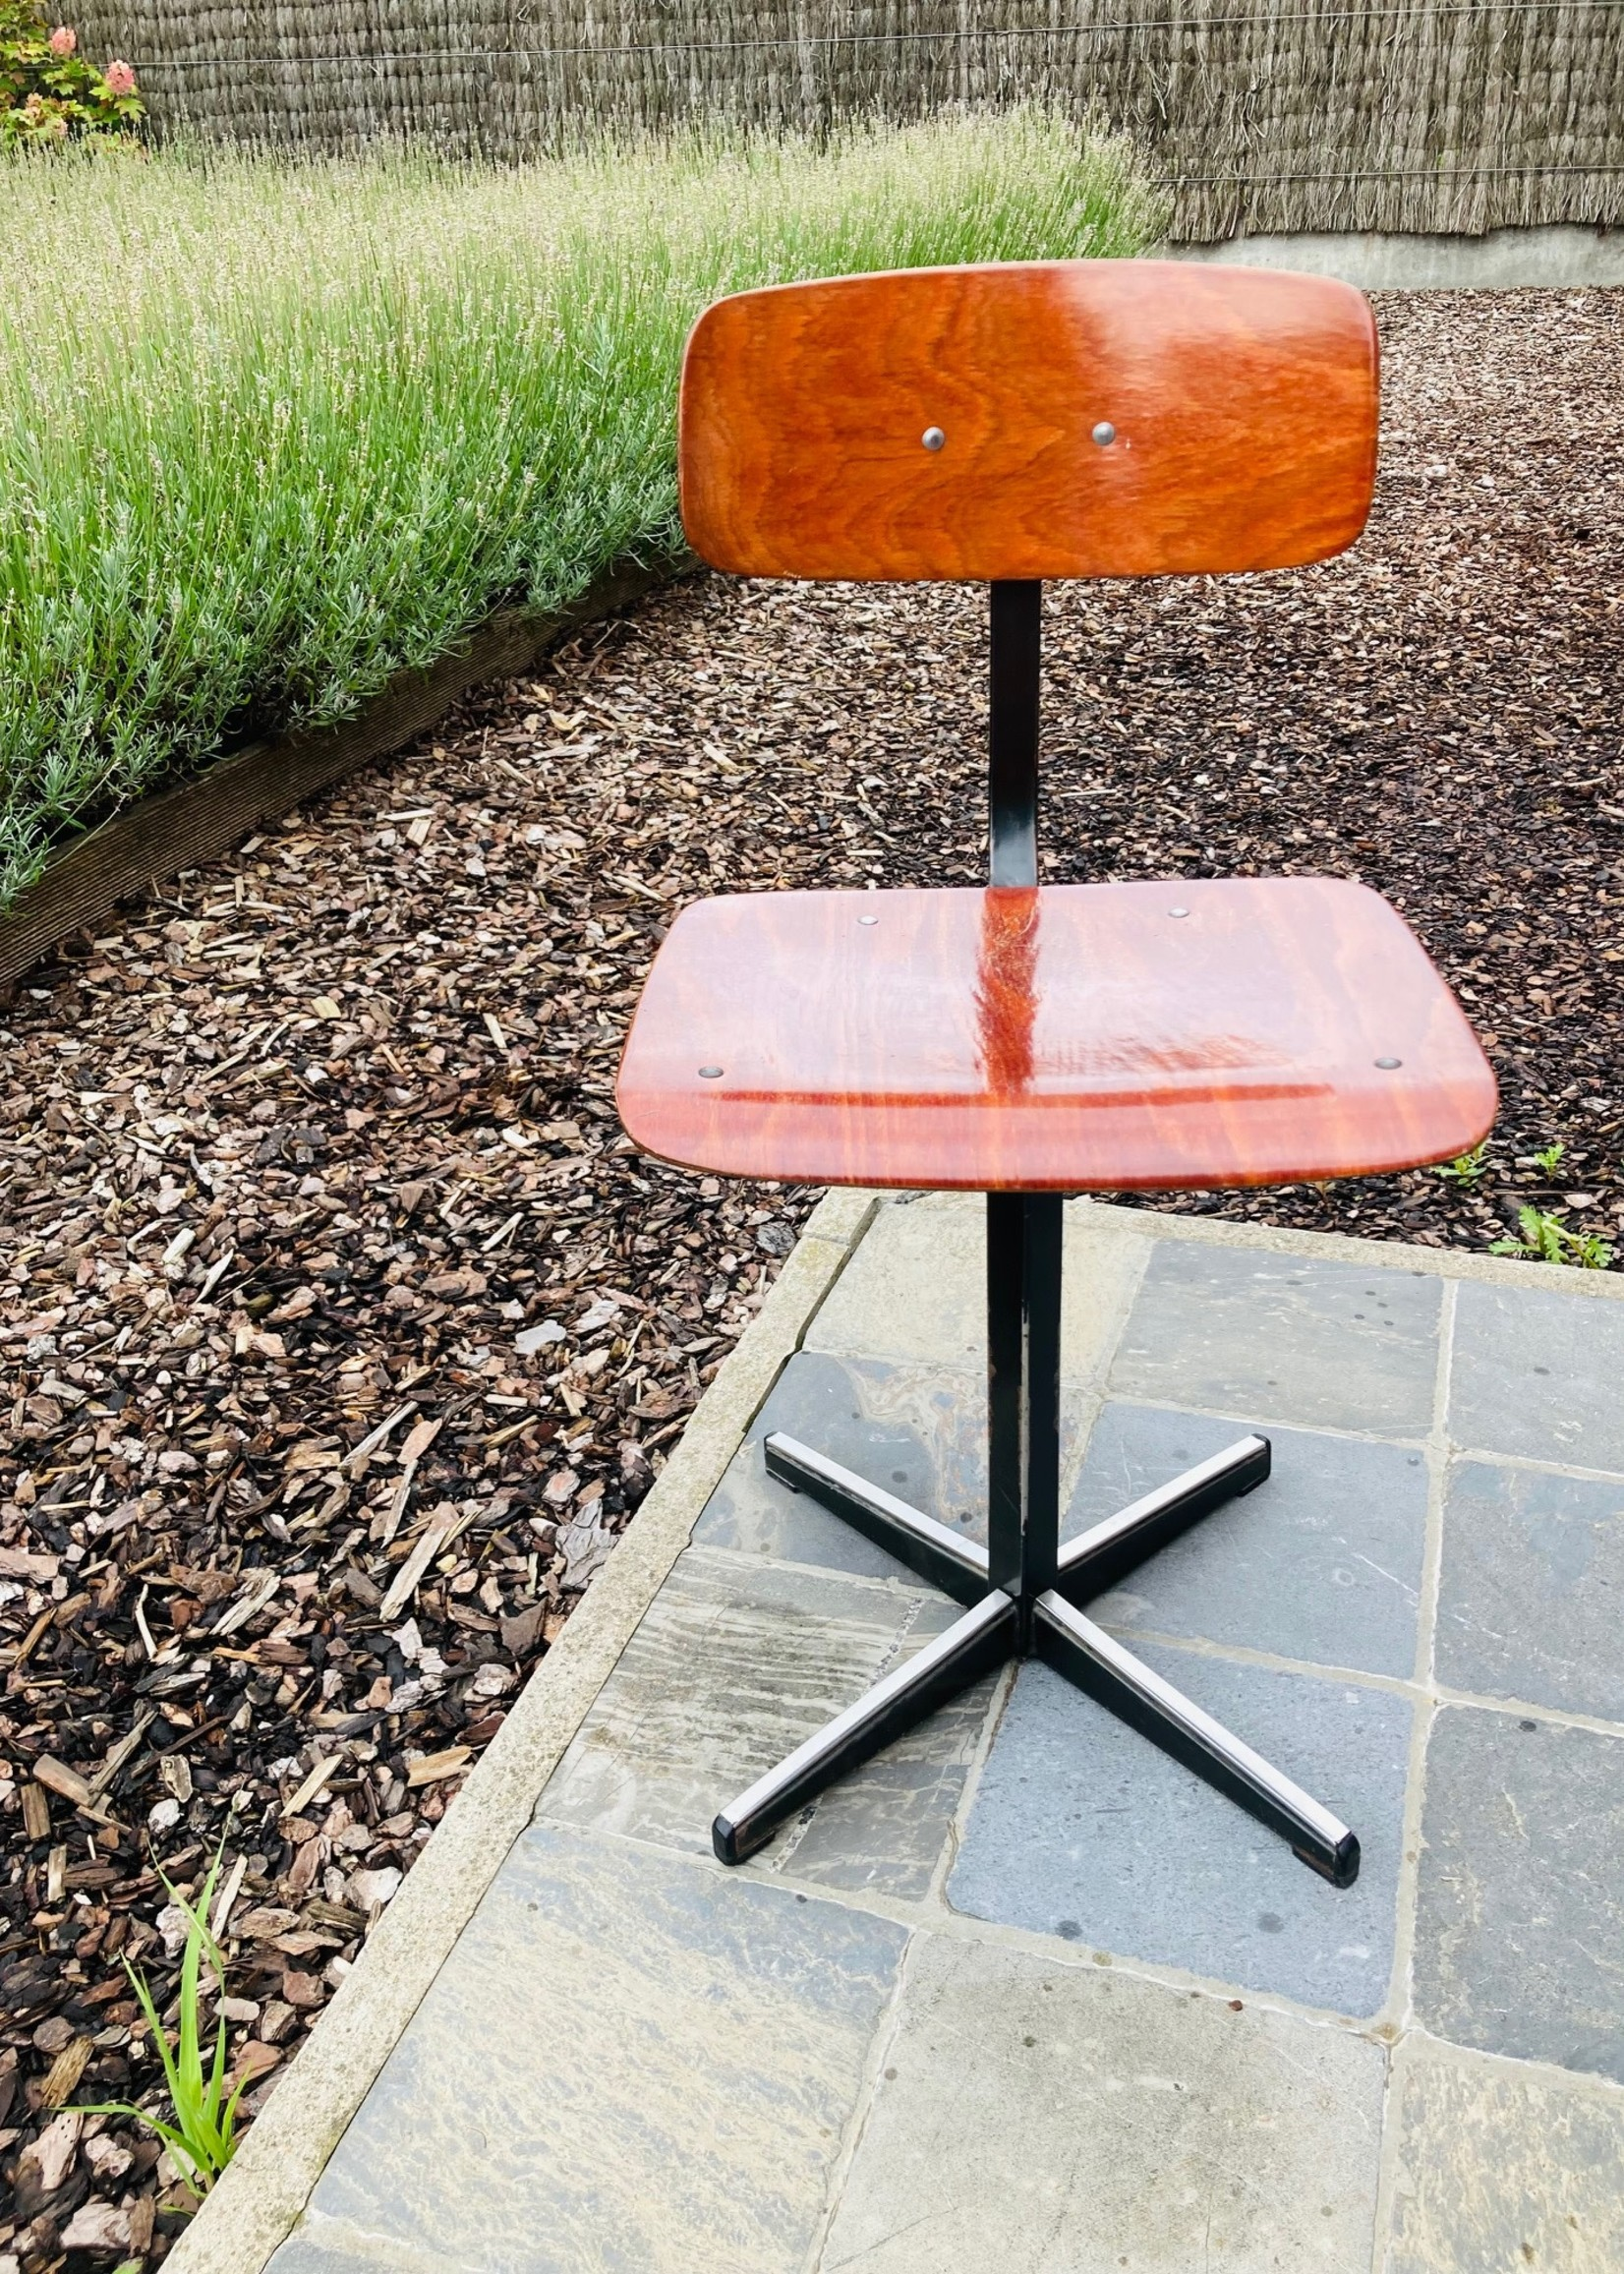 Kids office chair from the fifties on metal base